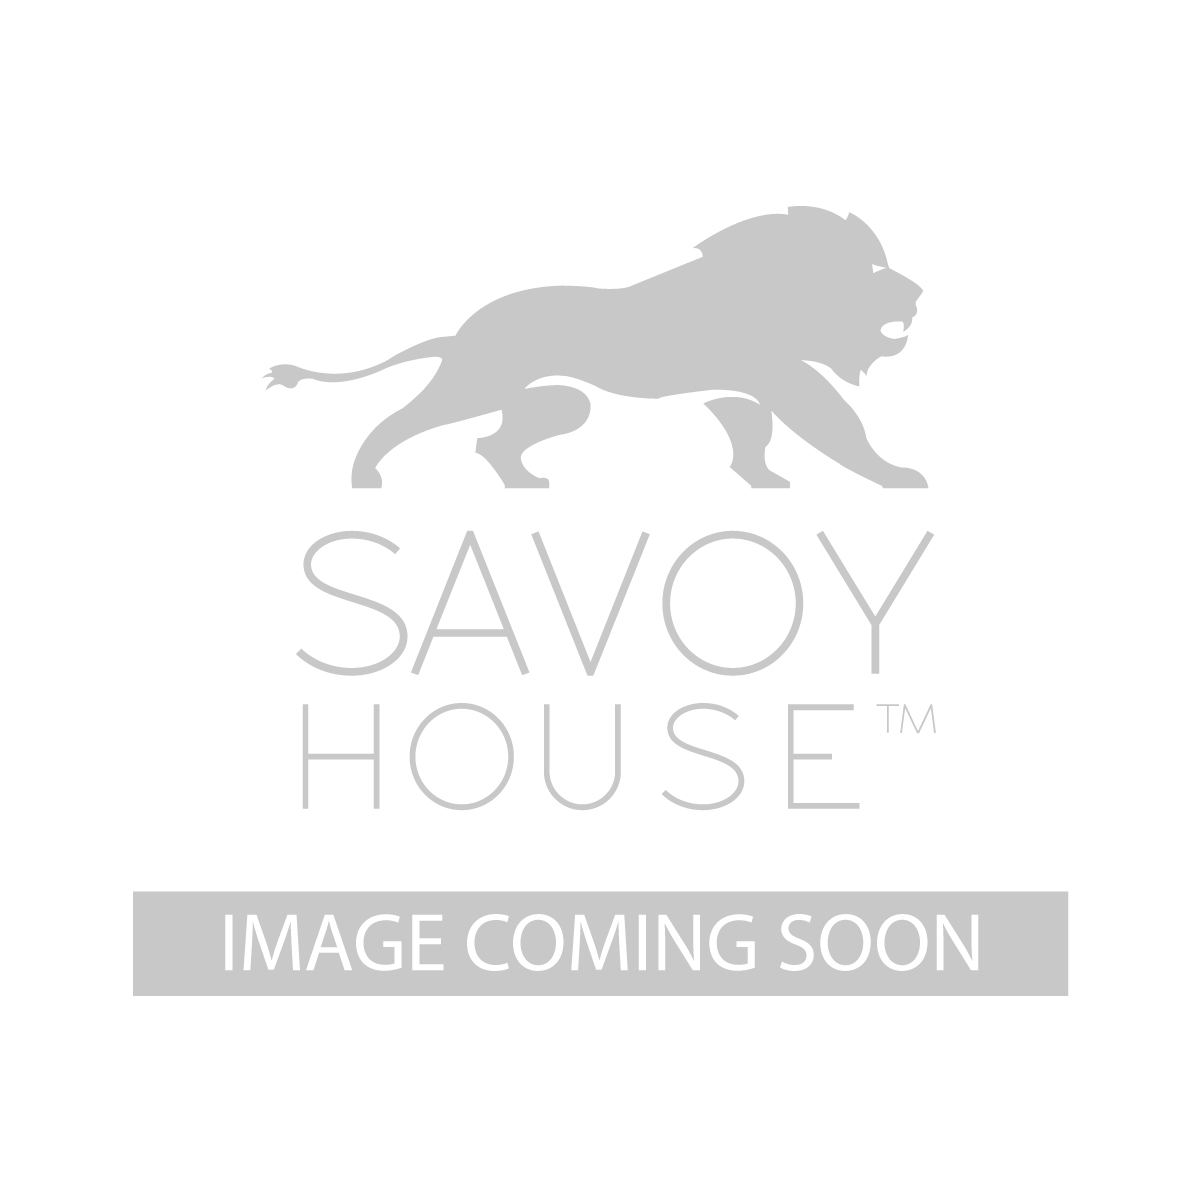 1 9533 15 196 alsace 15 light chandelier by savoy house for Savoy house com